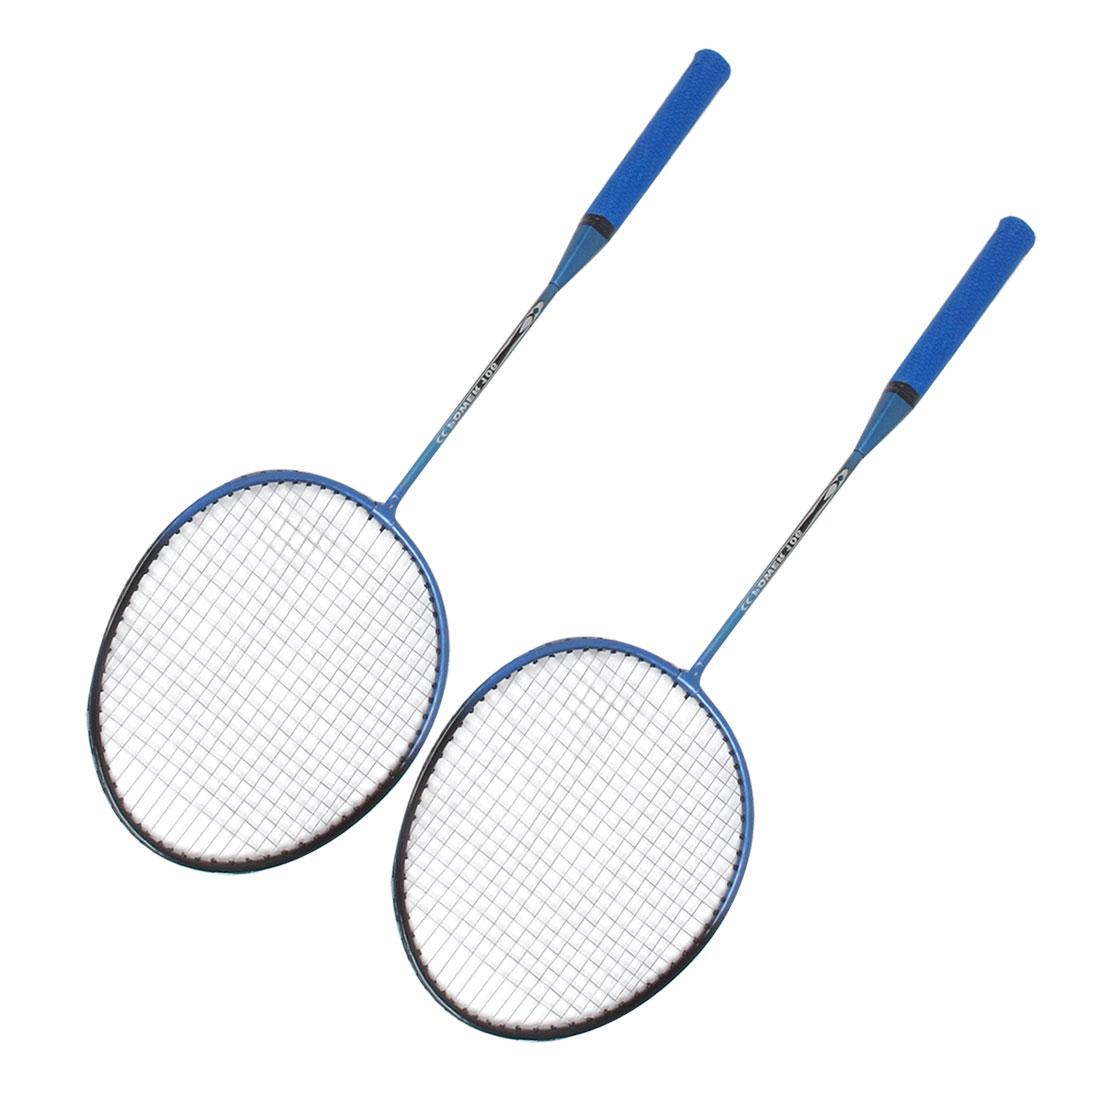 Pair Badminton Rackets Racquets Free String Grip Blue Black w Carrying Case